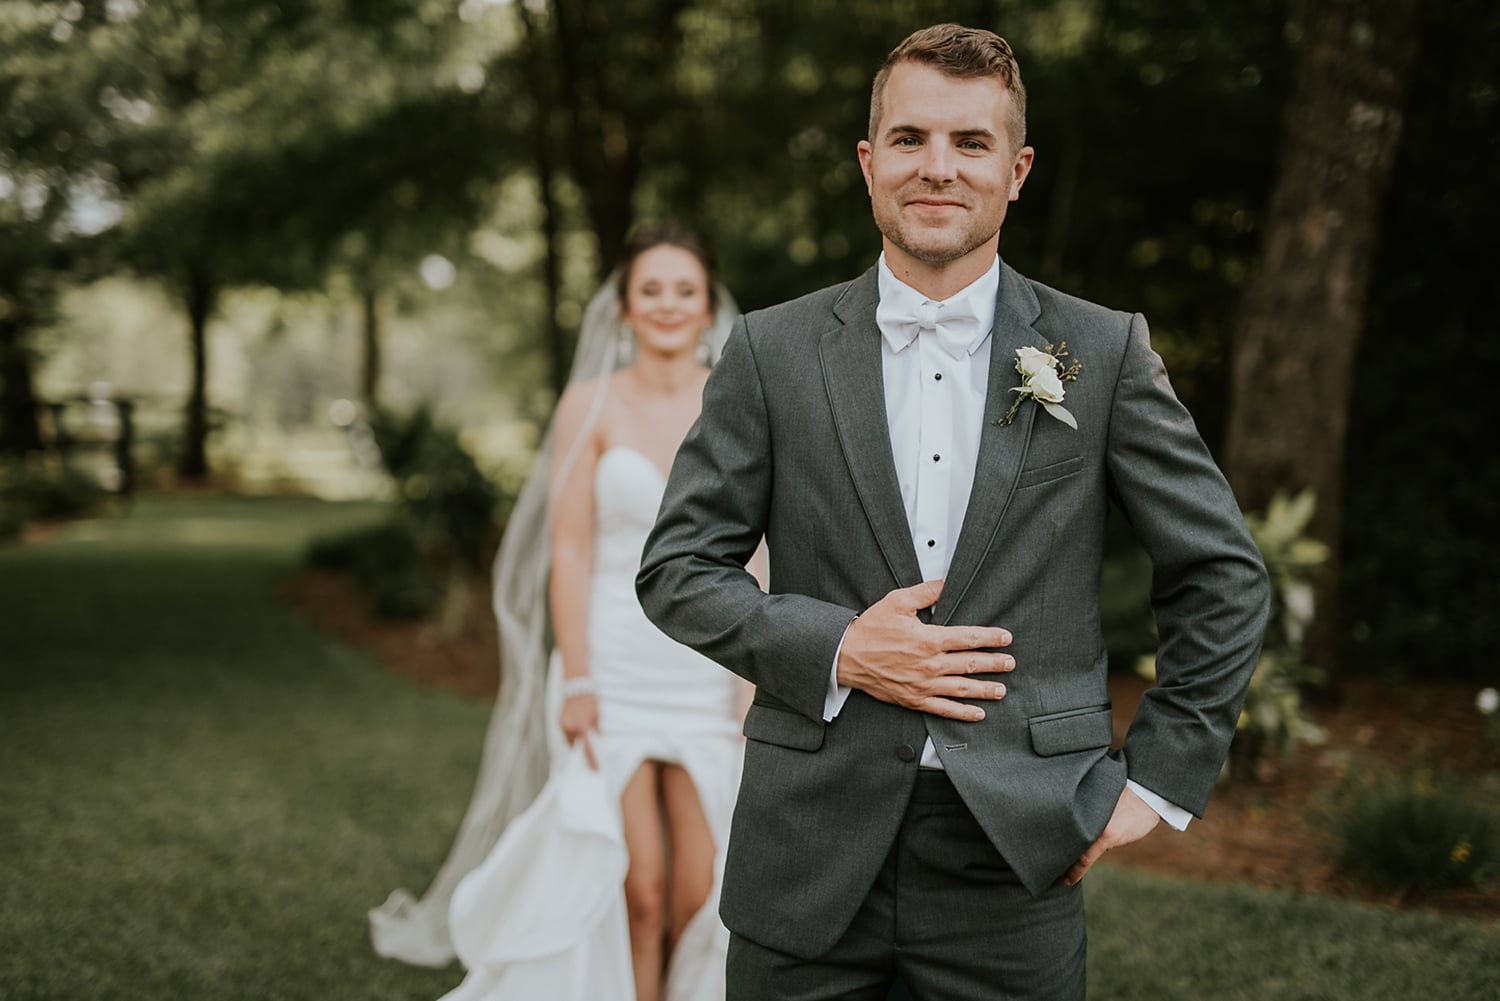 Haley And Drew S Wedding Was The Definition Of Rustic Elegance The Best Wedding Photos Of The Decade Will Have You Believing In Love Joy And True Happiness Popsugar Love